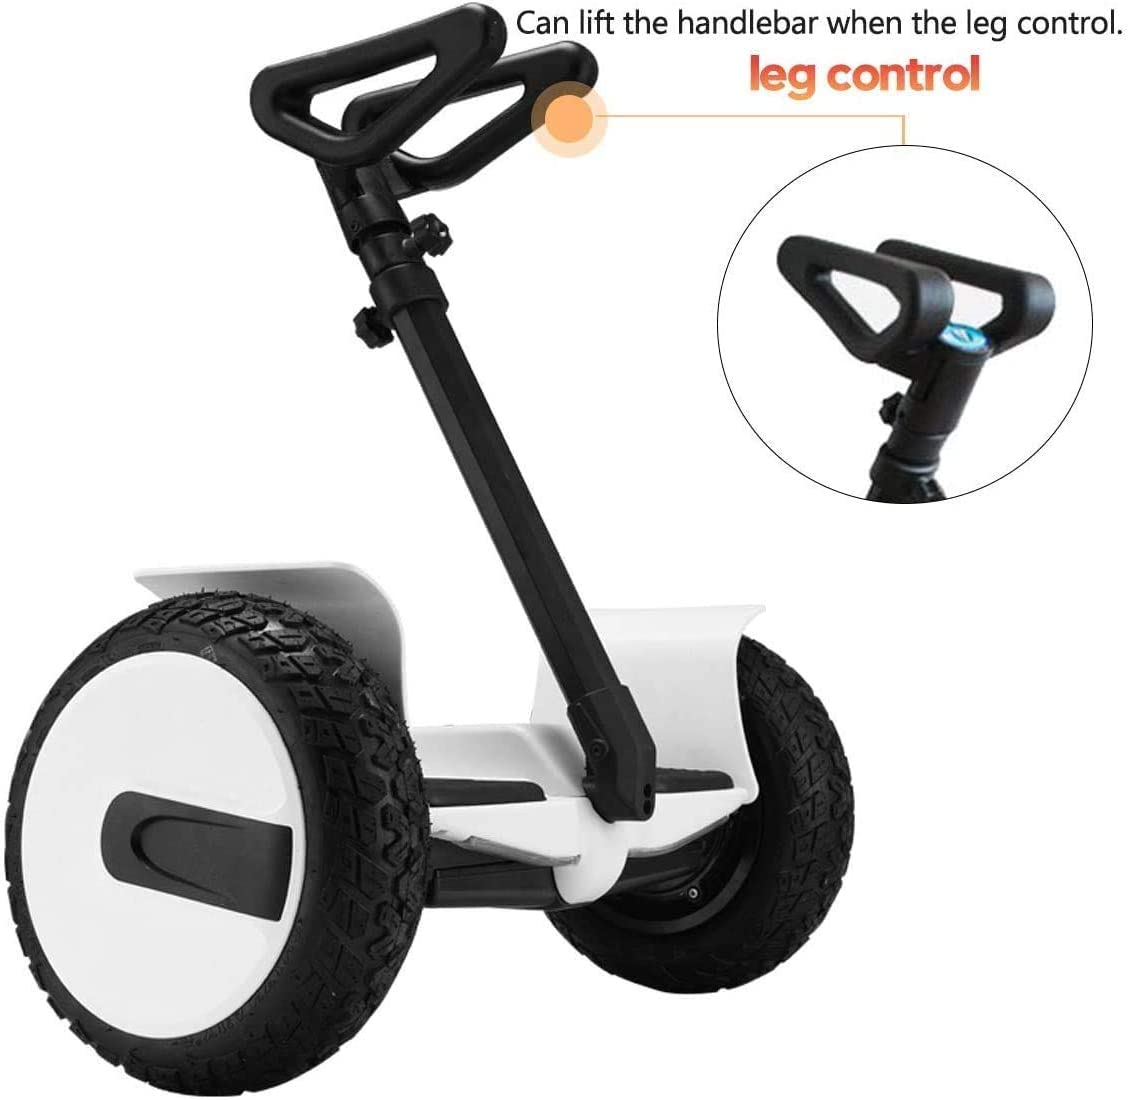 GLDYTIMES FEC Adjustable Handlebar Handle Stand Release Knee Pressure Replacement for Segway Ninebot miniPRO miniLITE S Self Balance Hoverboard Handlebar Components Only